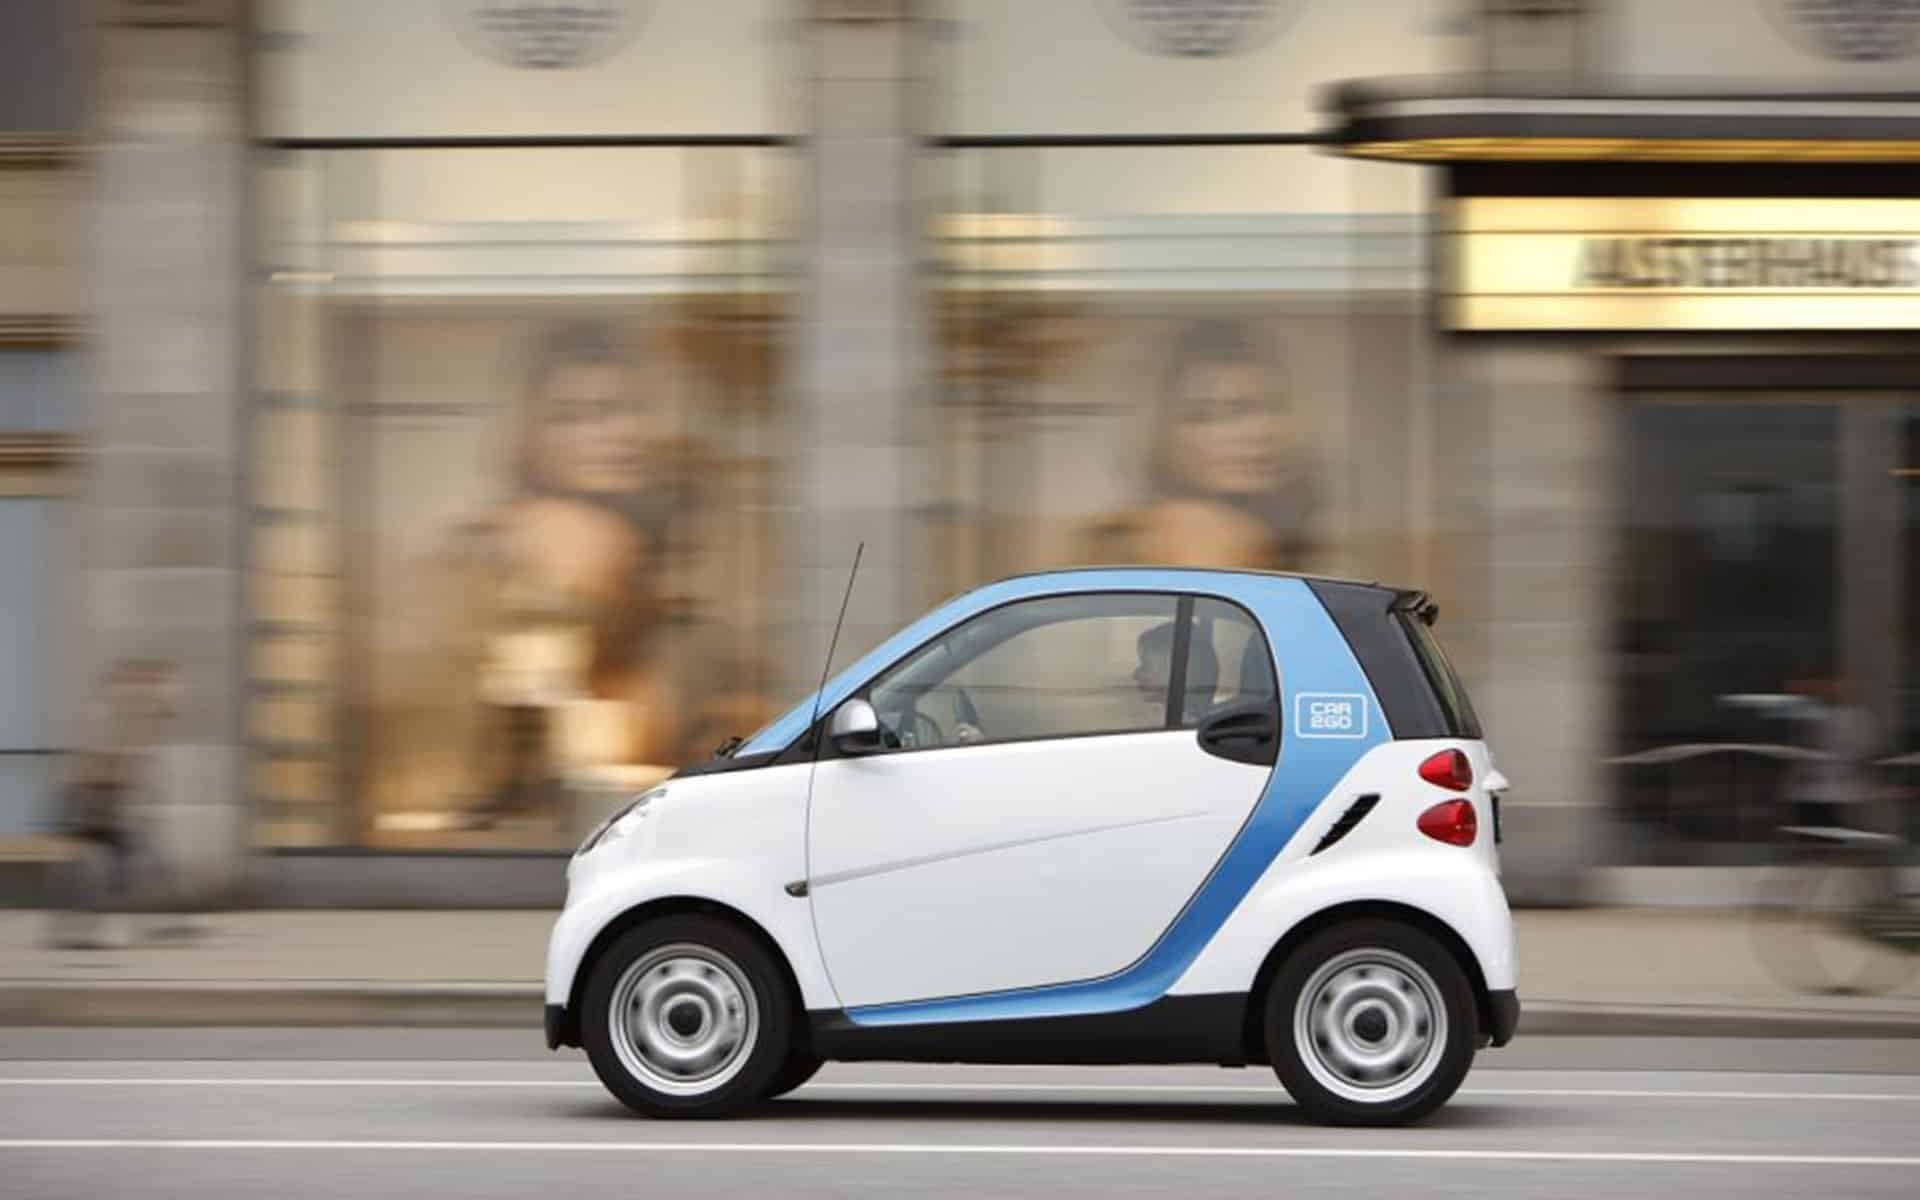 Thursday, January 25th from 12.00 to 18.00 registration day CAR2GO